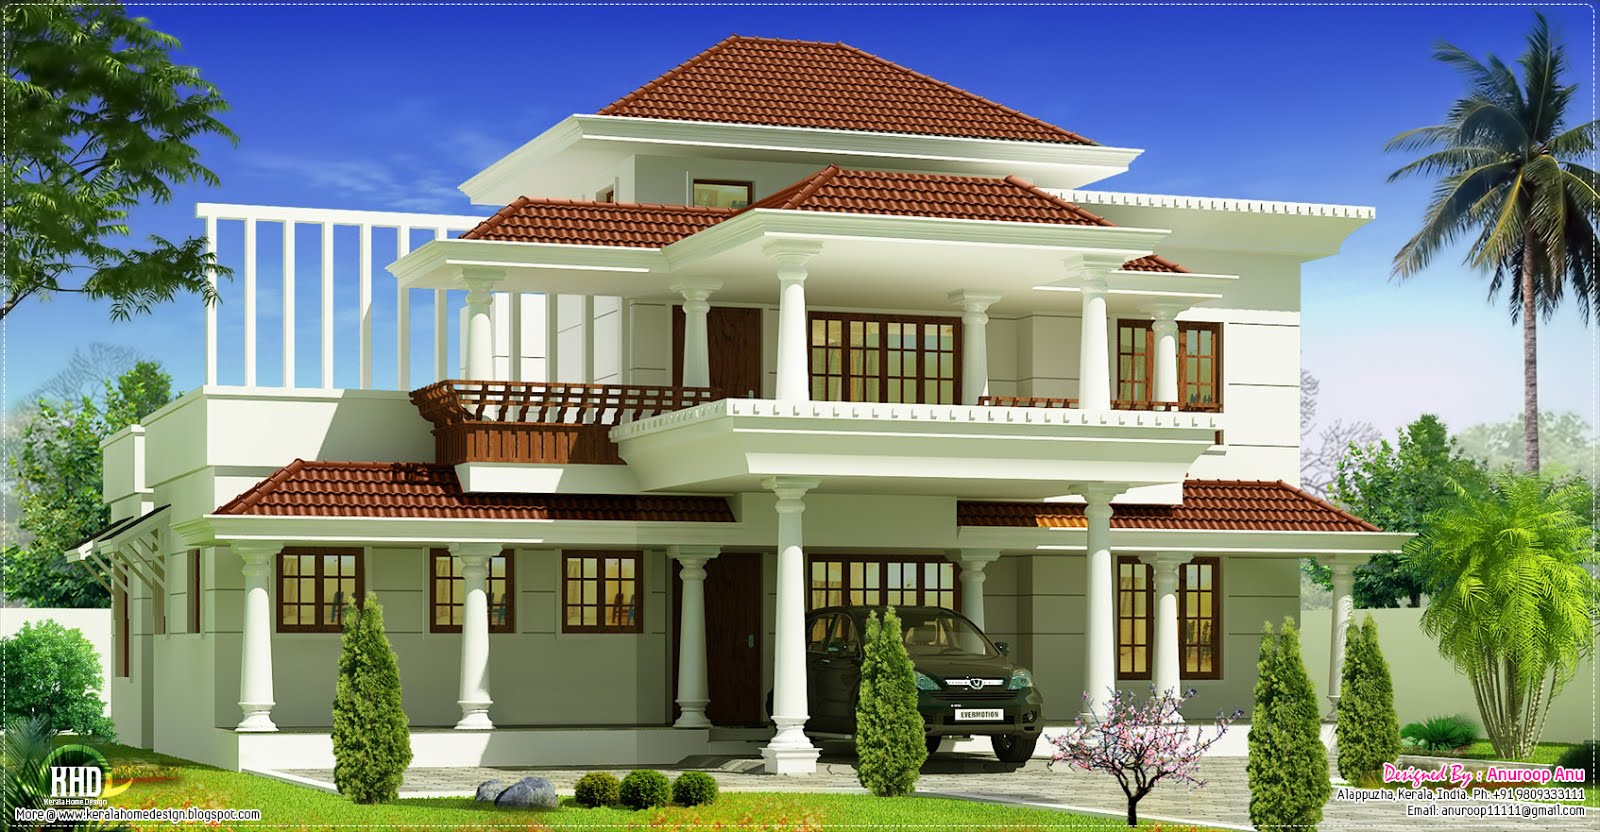 Beautiful traditional mix Kerala villa design in 1700 sq feet